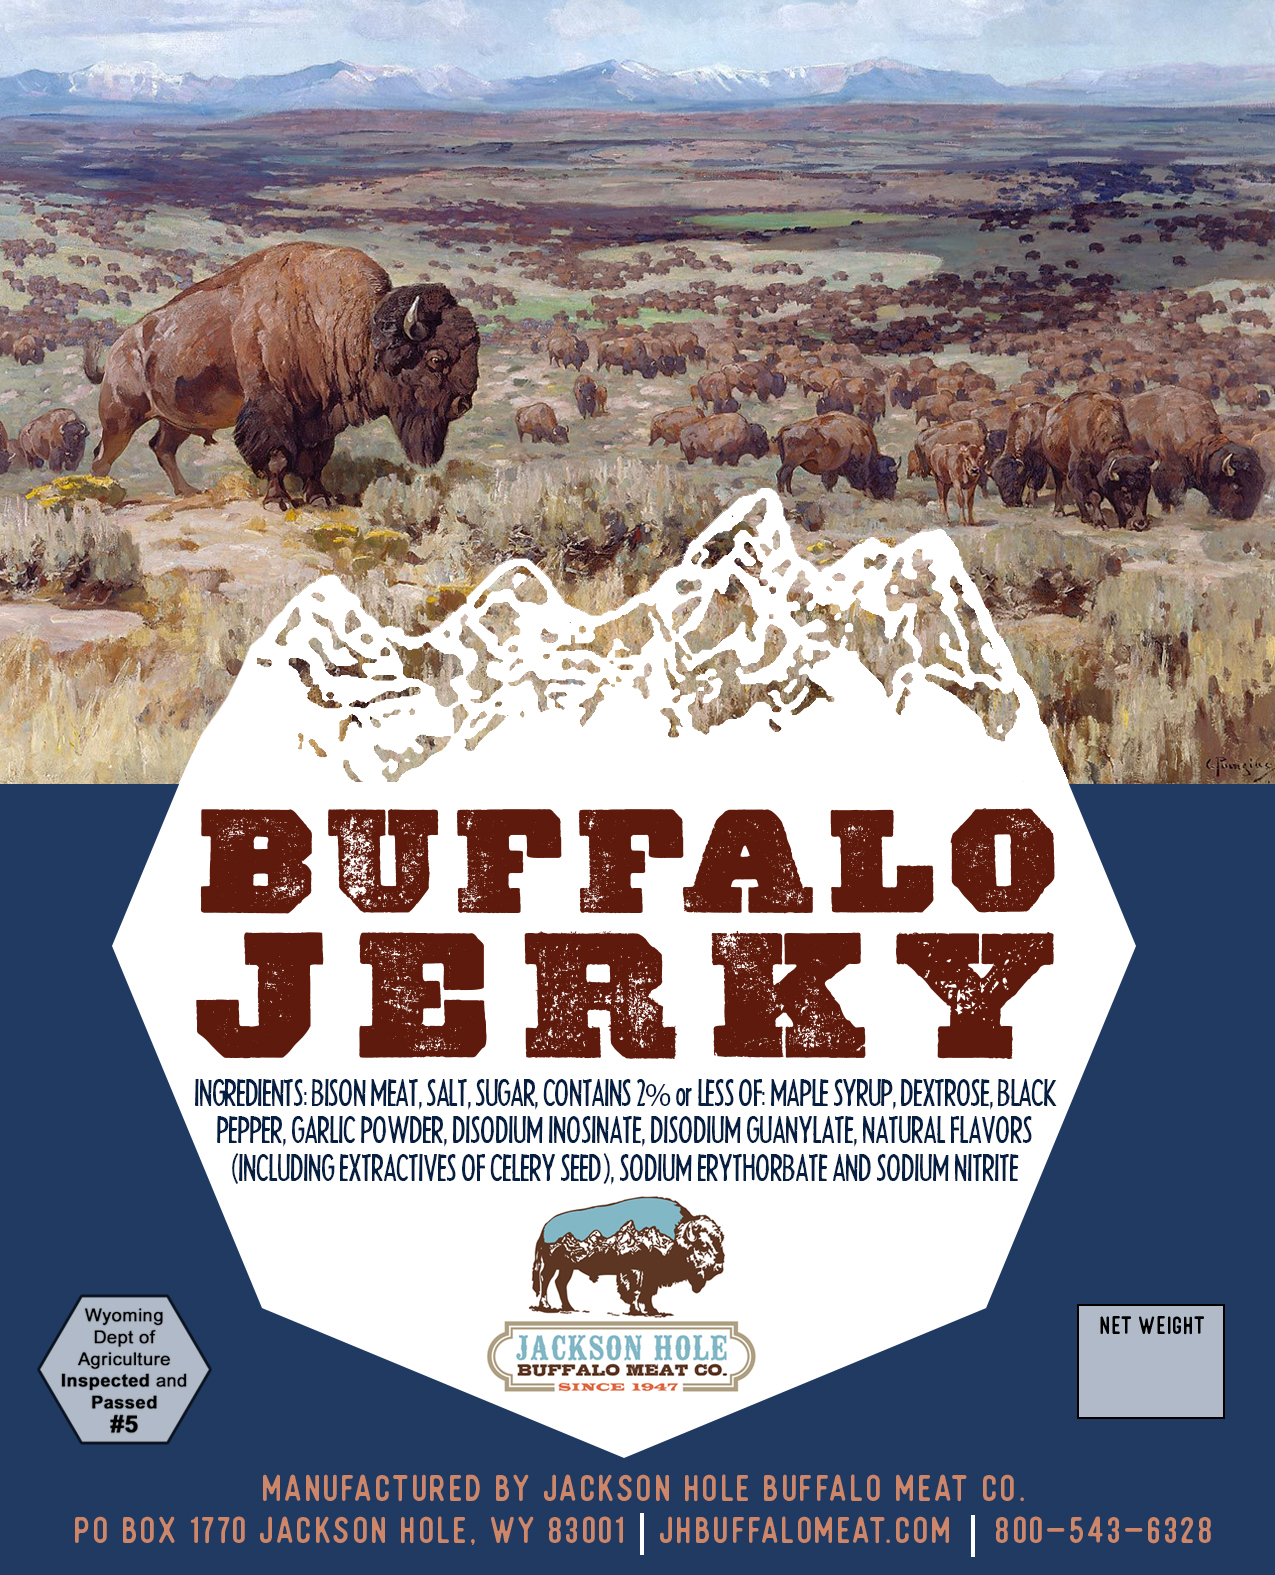 JACKSON HOLE BUFFALO MEAT CO